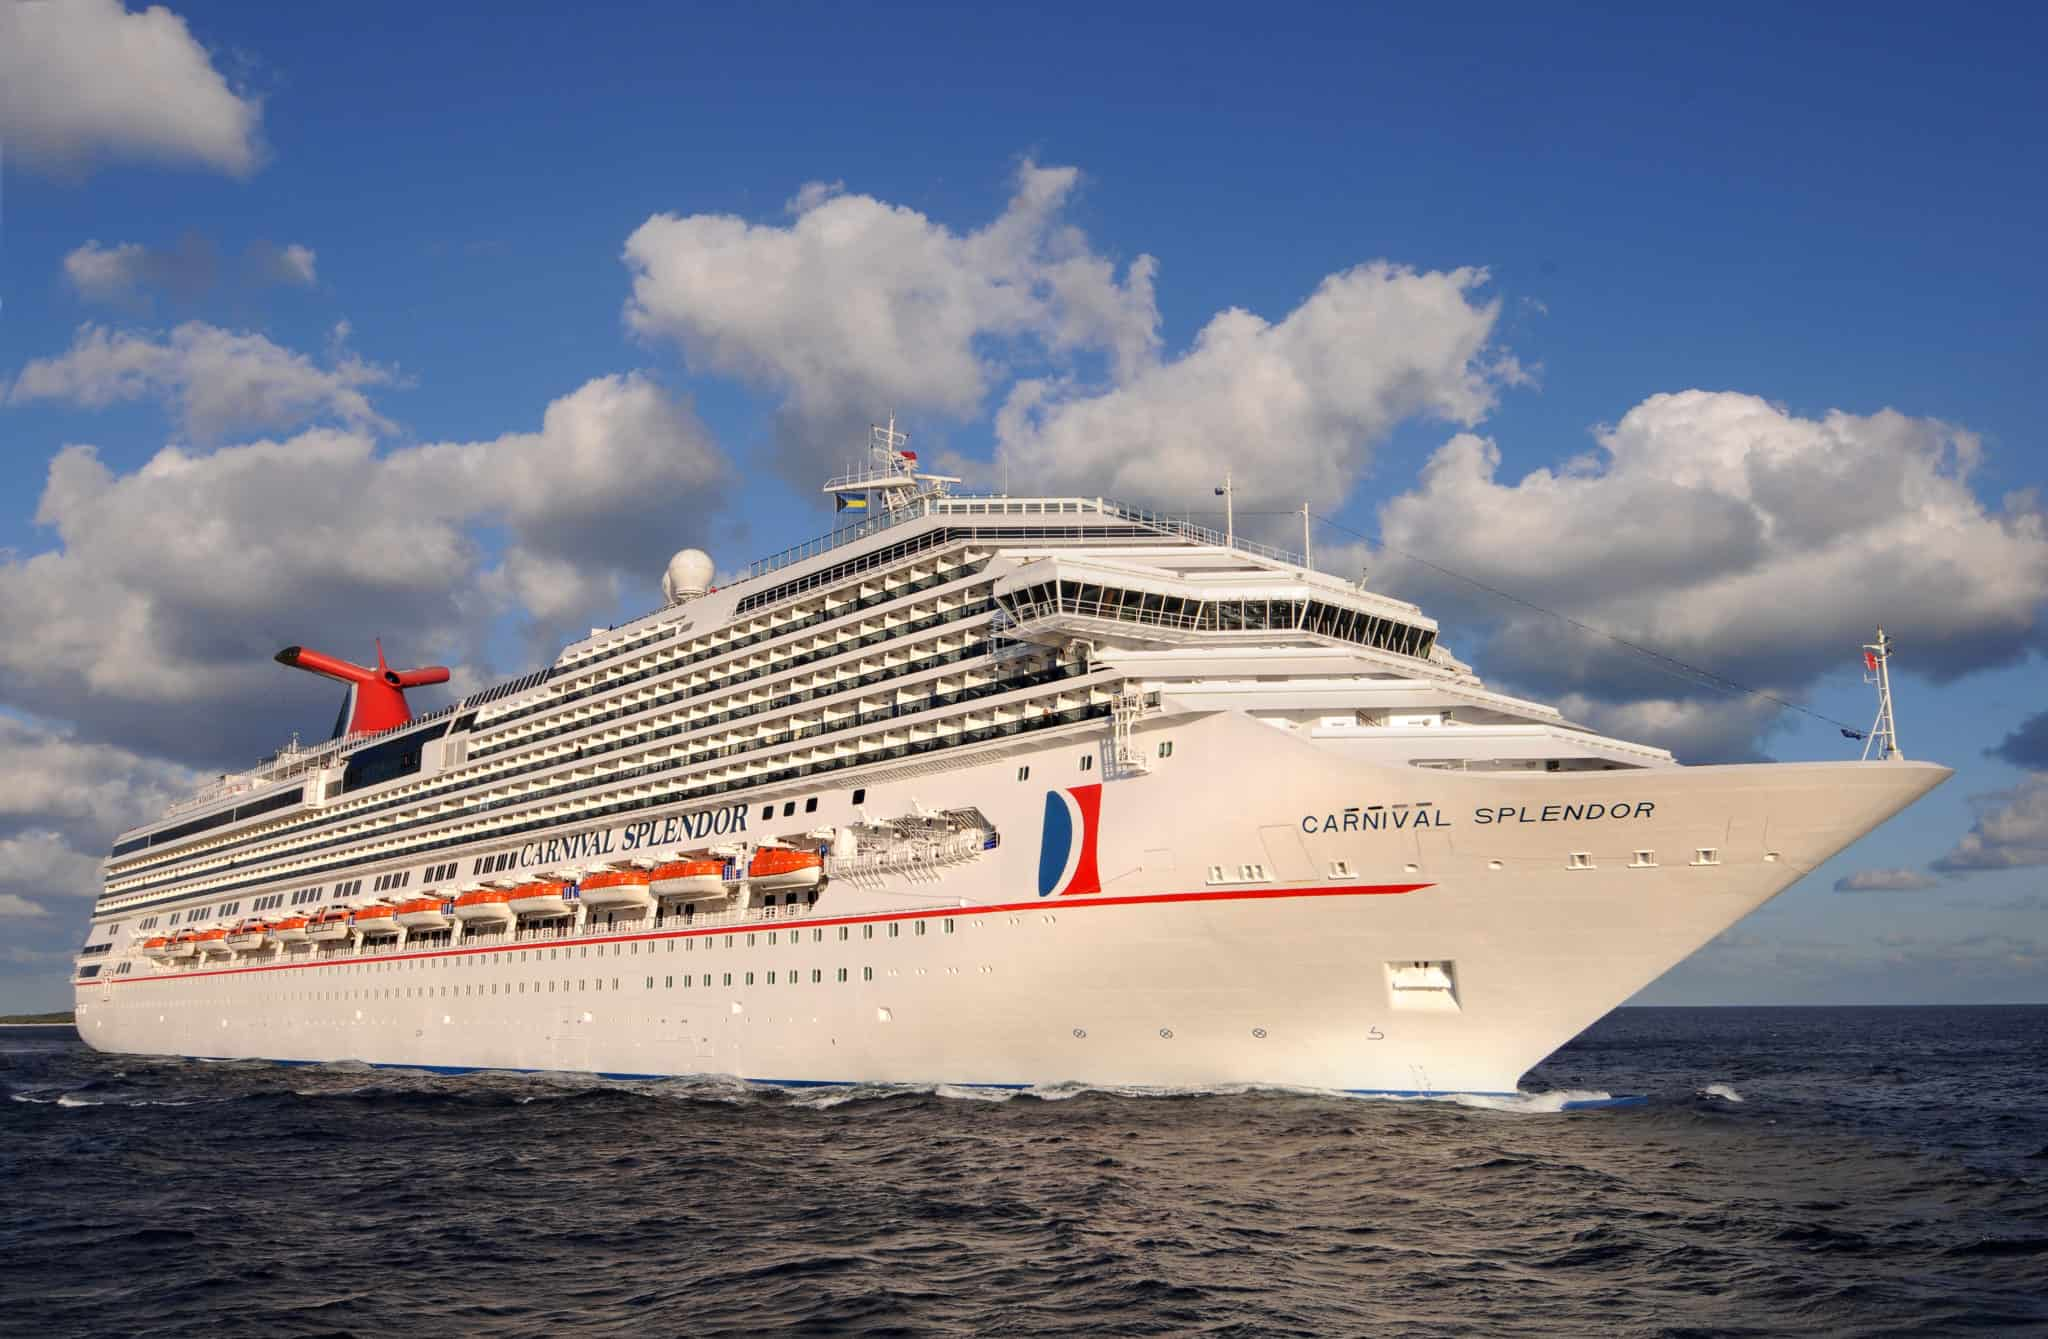 Carnival Splendor To Operate 14 Day Alaska Cruise Round Trip From Long Beach